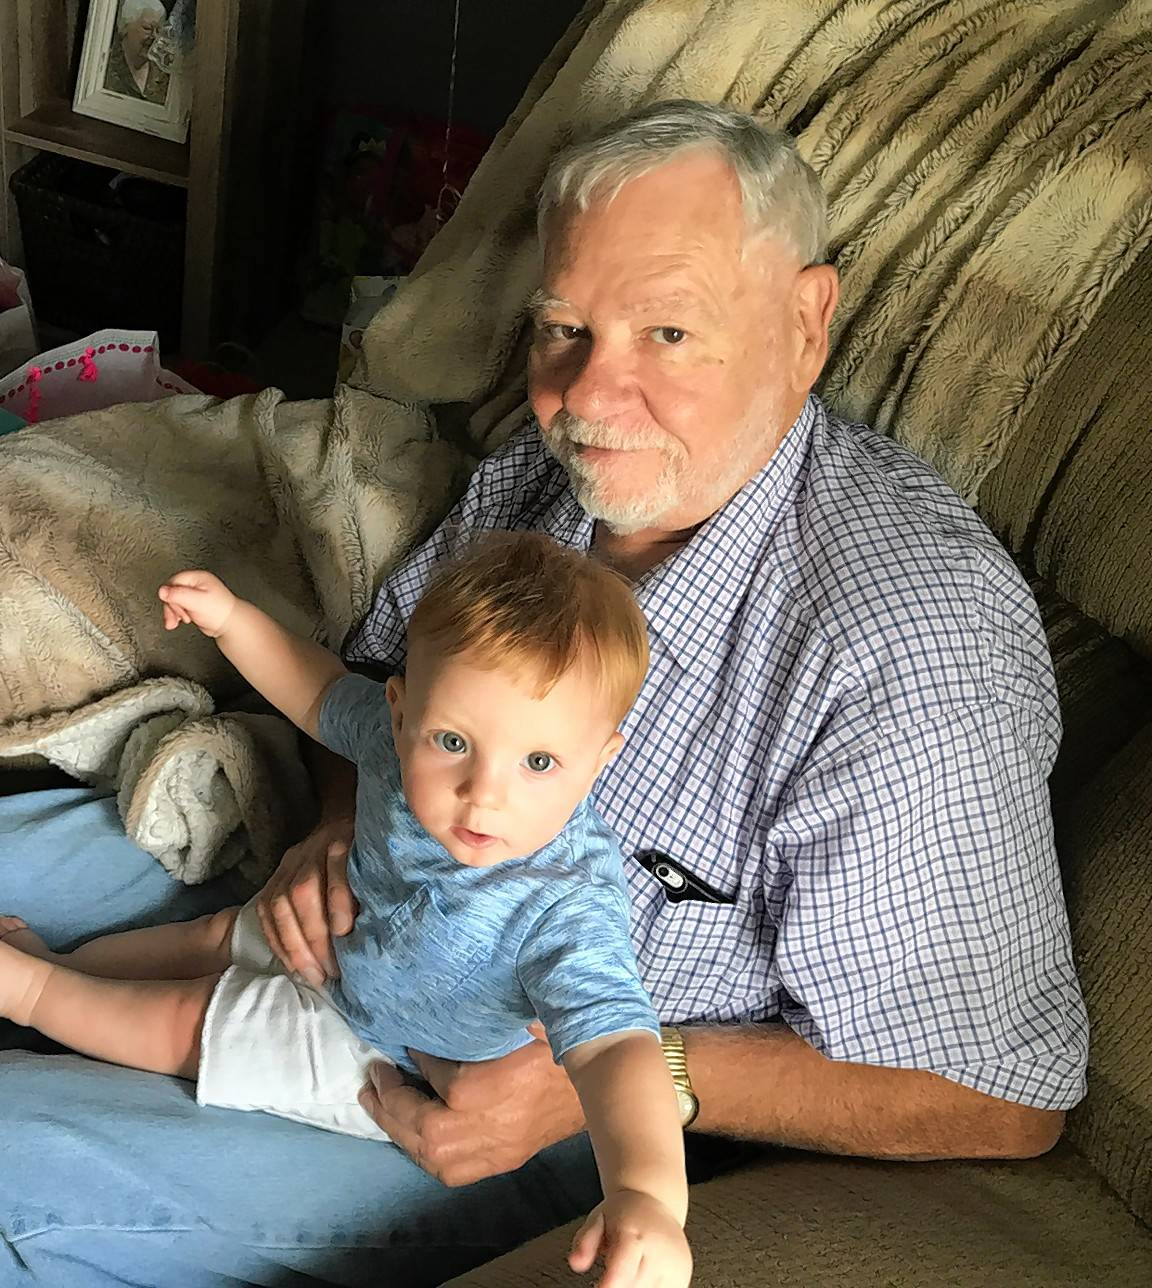 Jim Putman, 72, of Elgin is pictured Sept. 3 with his great-grandson Michael. He was severely injured the next day while driving through Ohio.